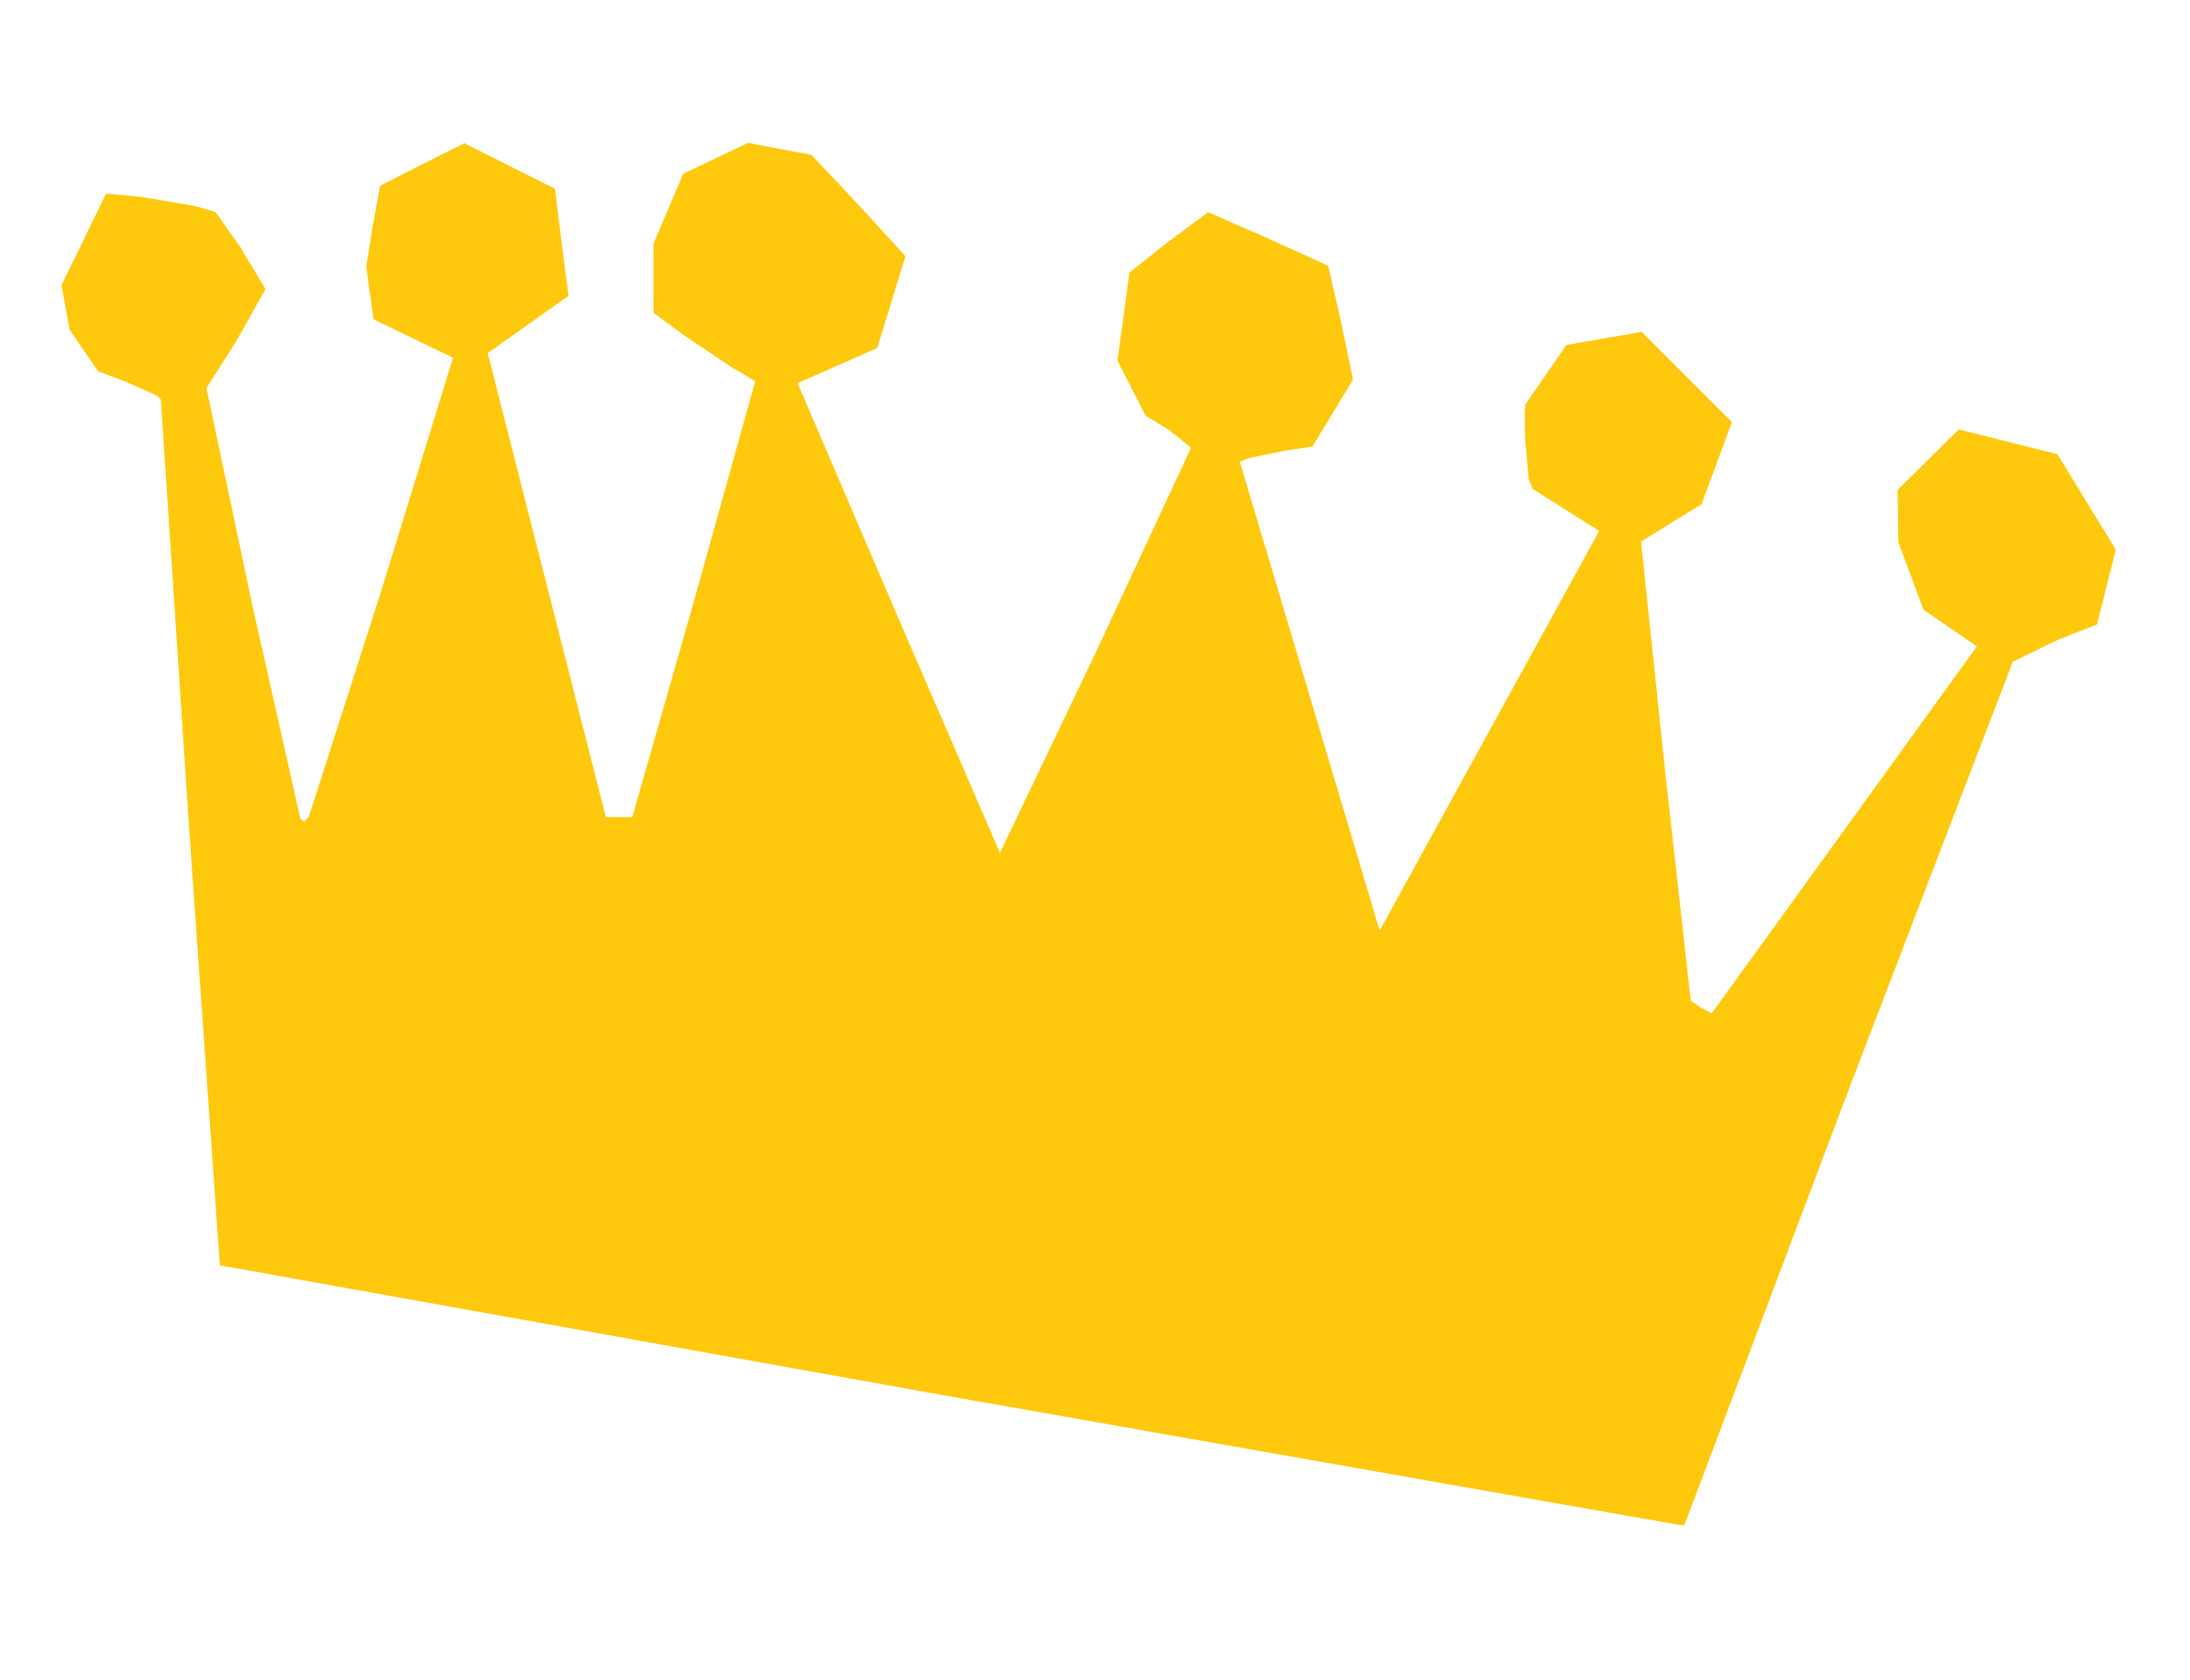 Crown refixed big image. Crowns clipart yellow